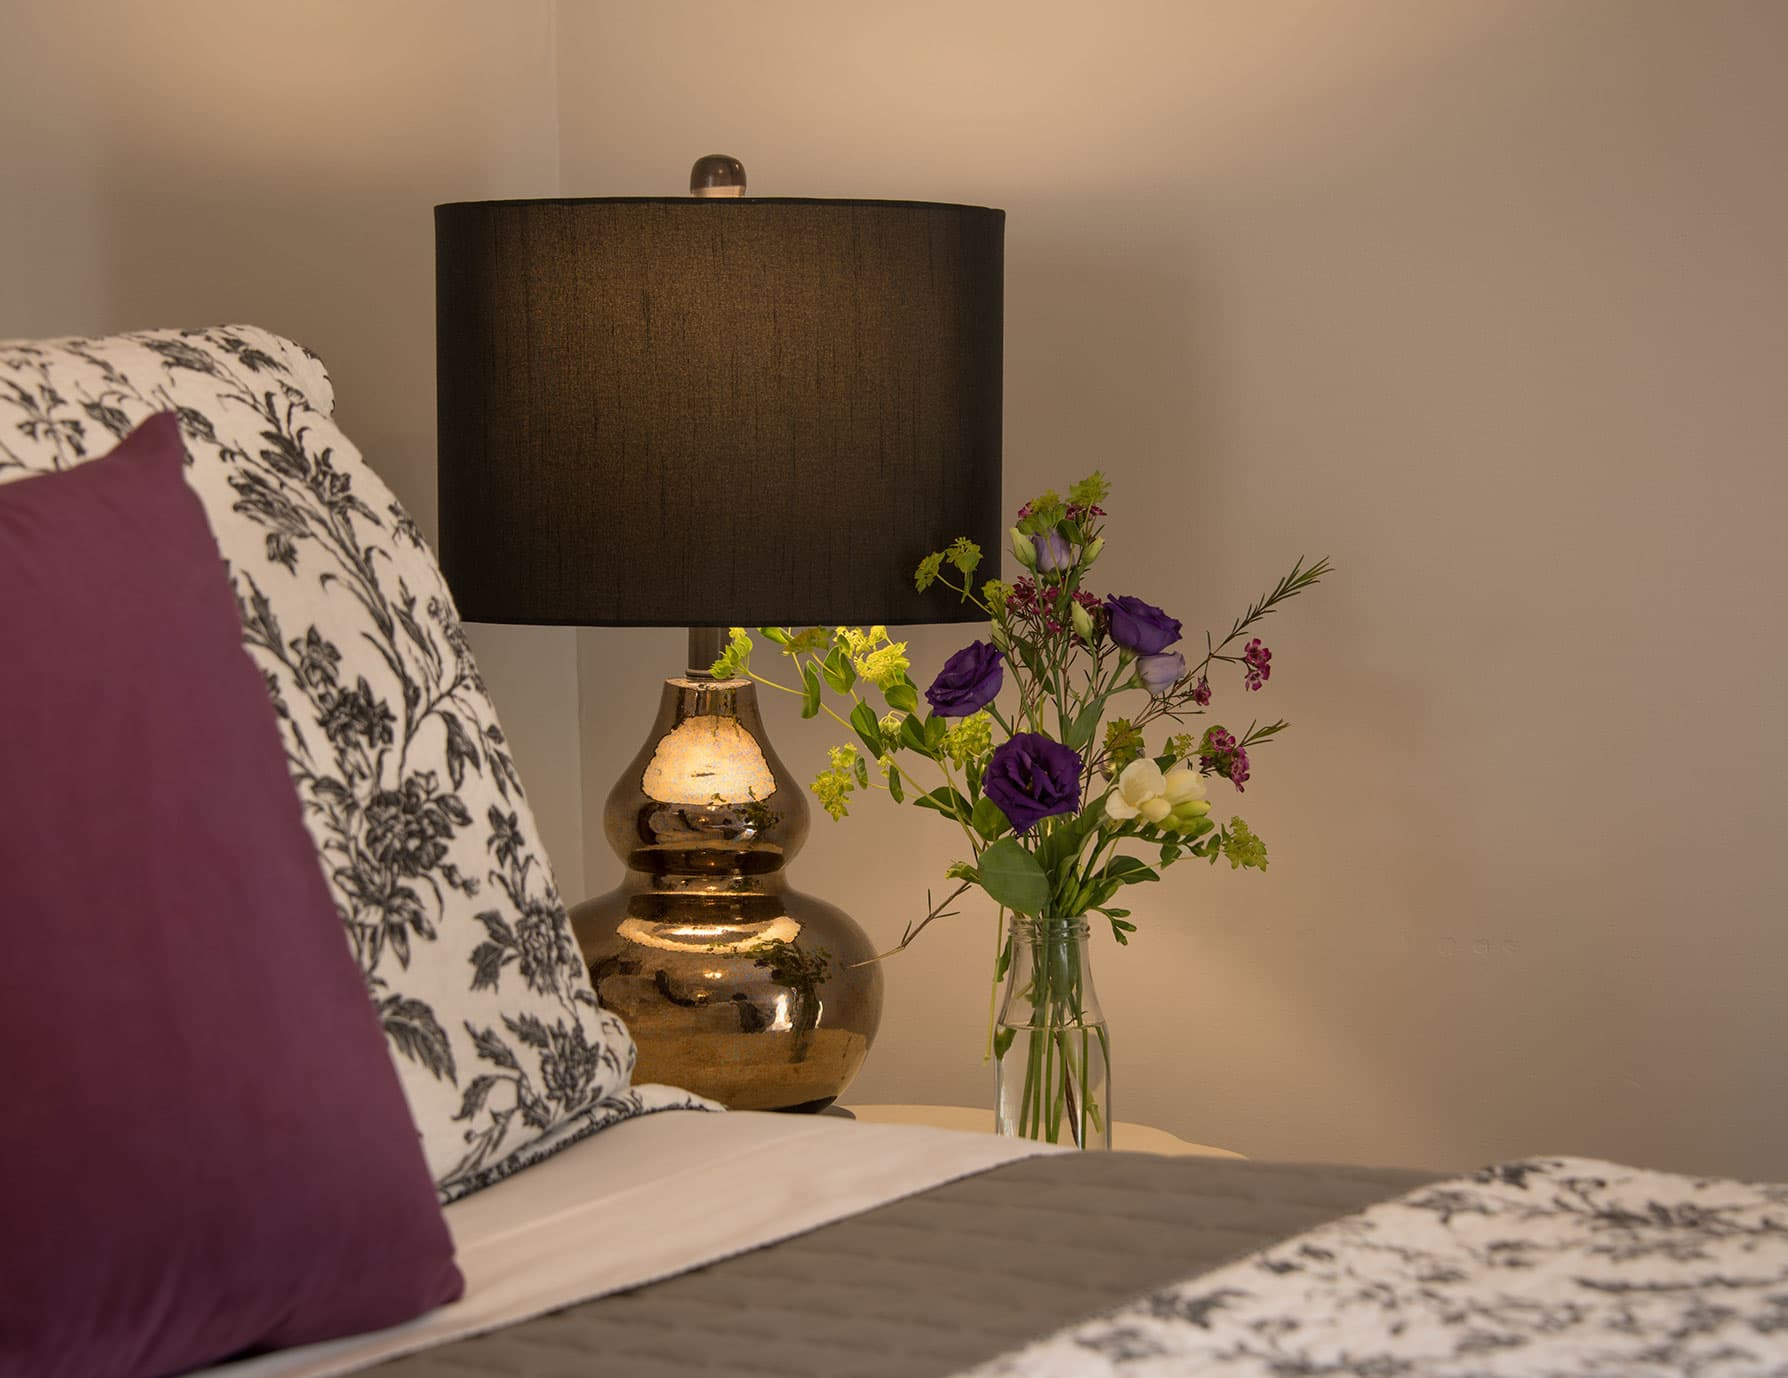 Lamp and purple flower vase on nightstand at a Cooperstown B&B